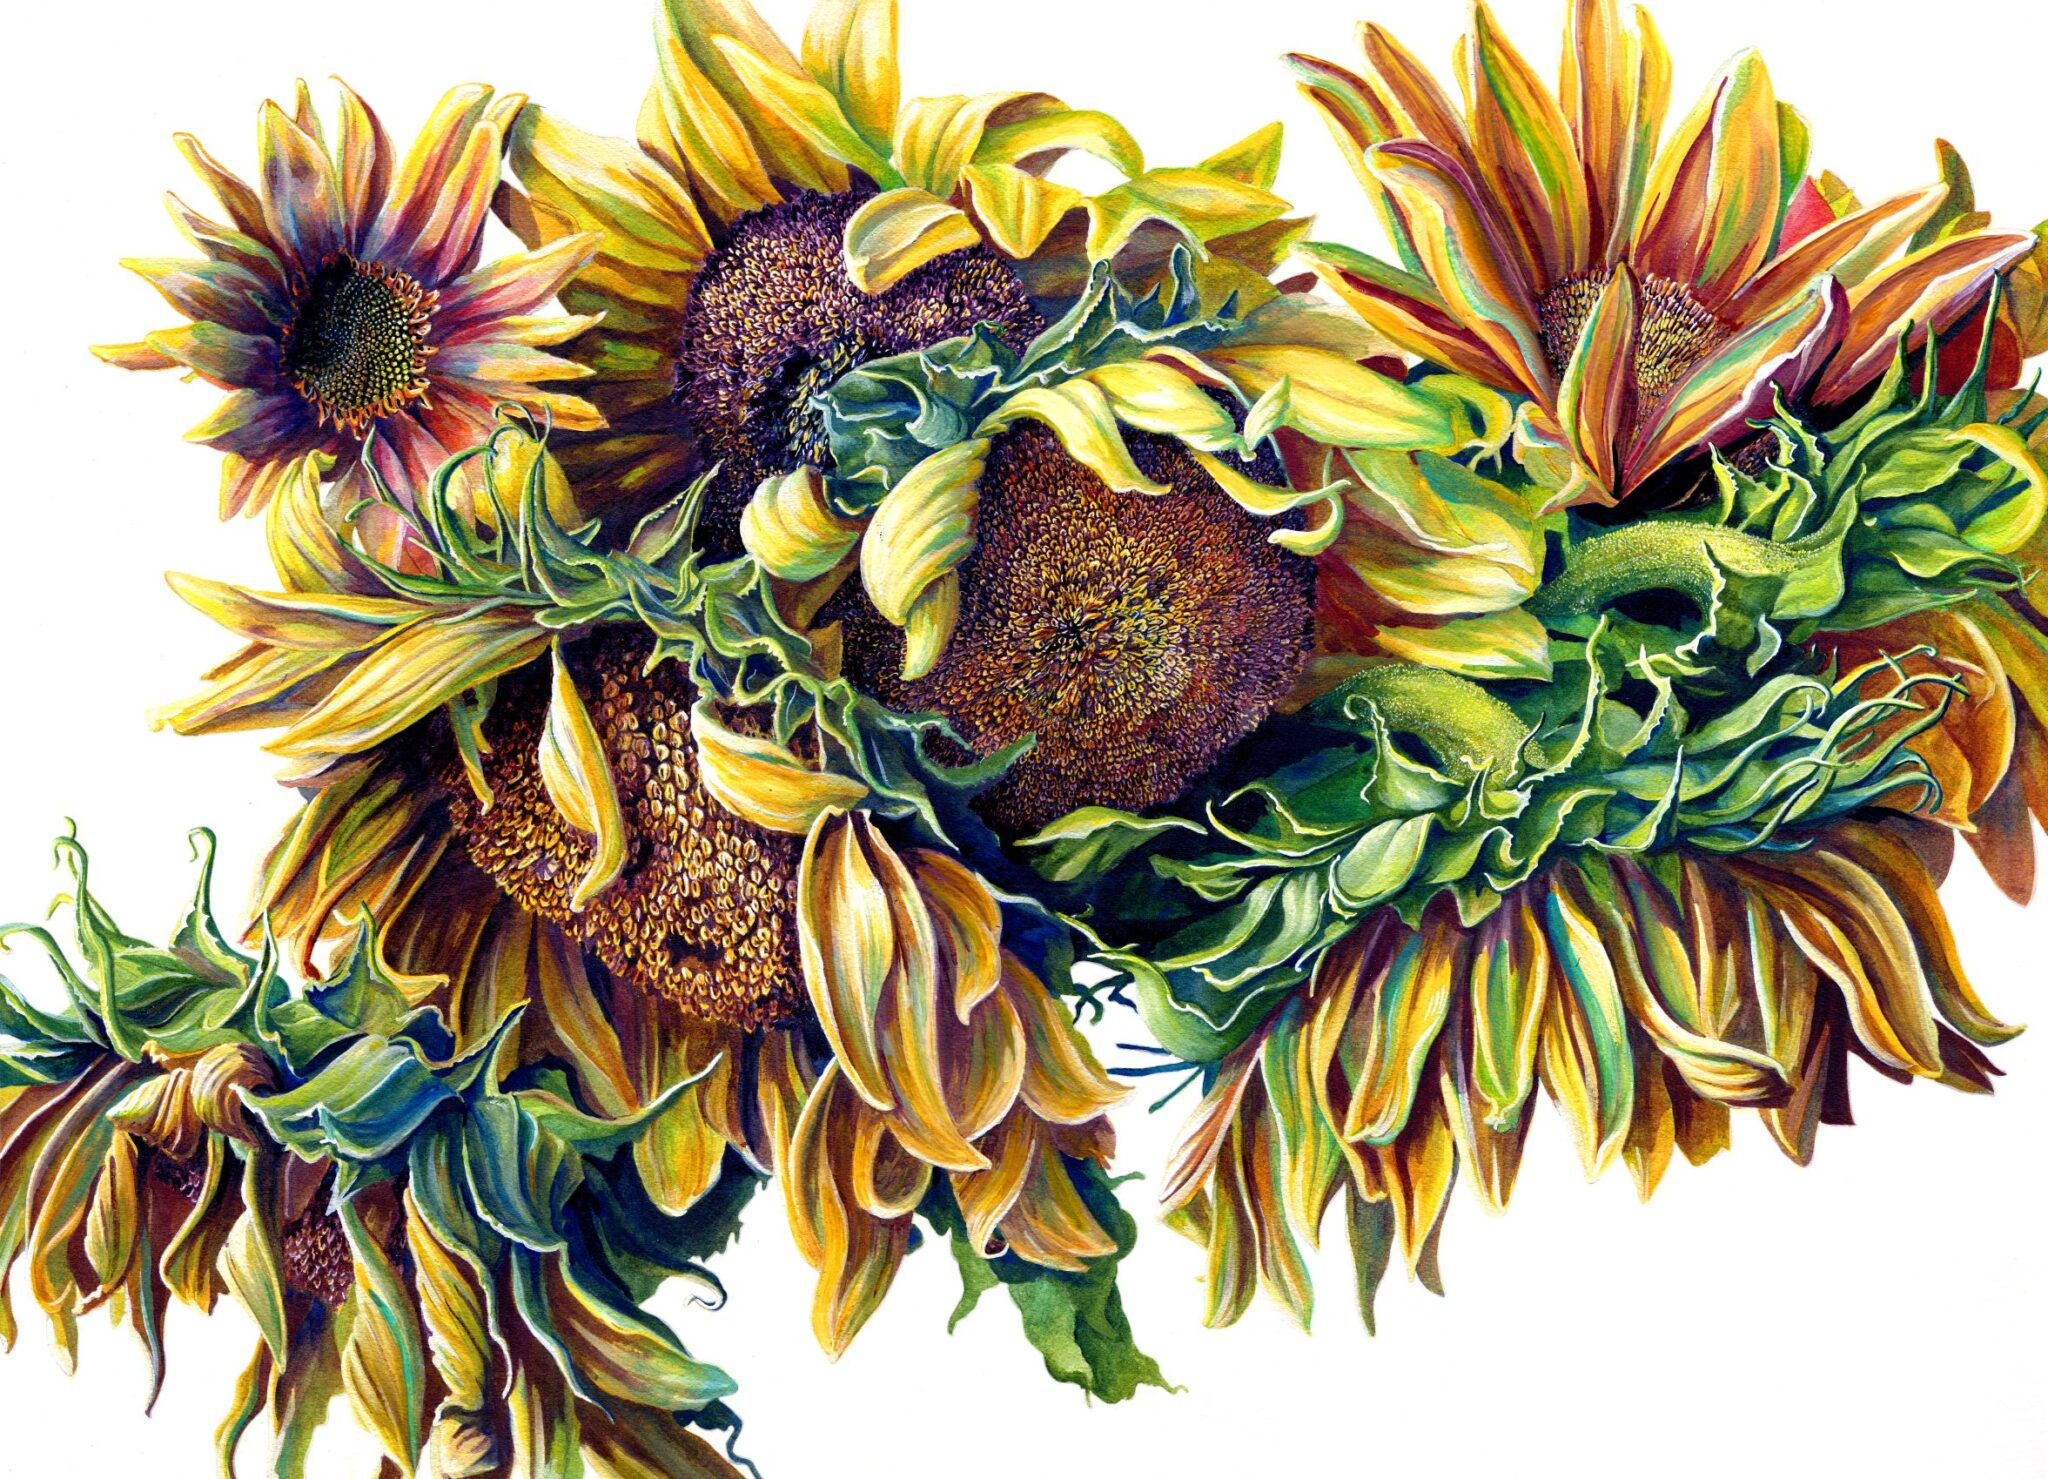 Sunflowers By Martha Iserman (Petals And Wings Exhibition)